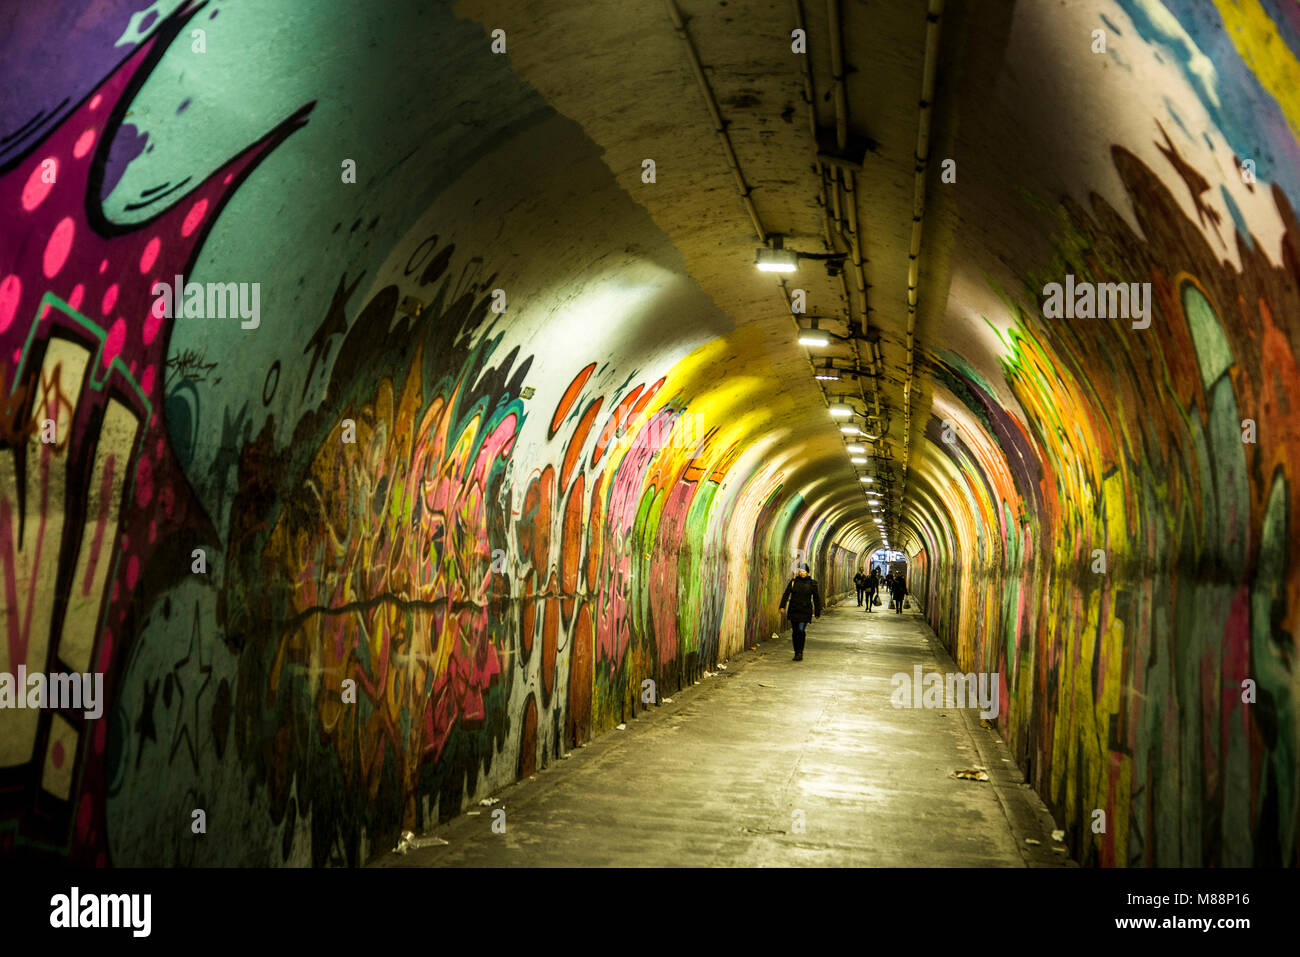 New York subway tunnel filled with graffiti - Stock Image